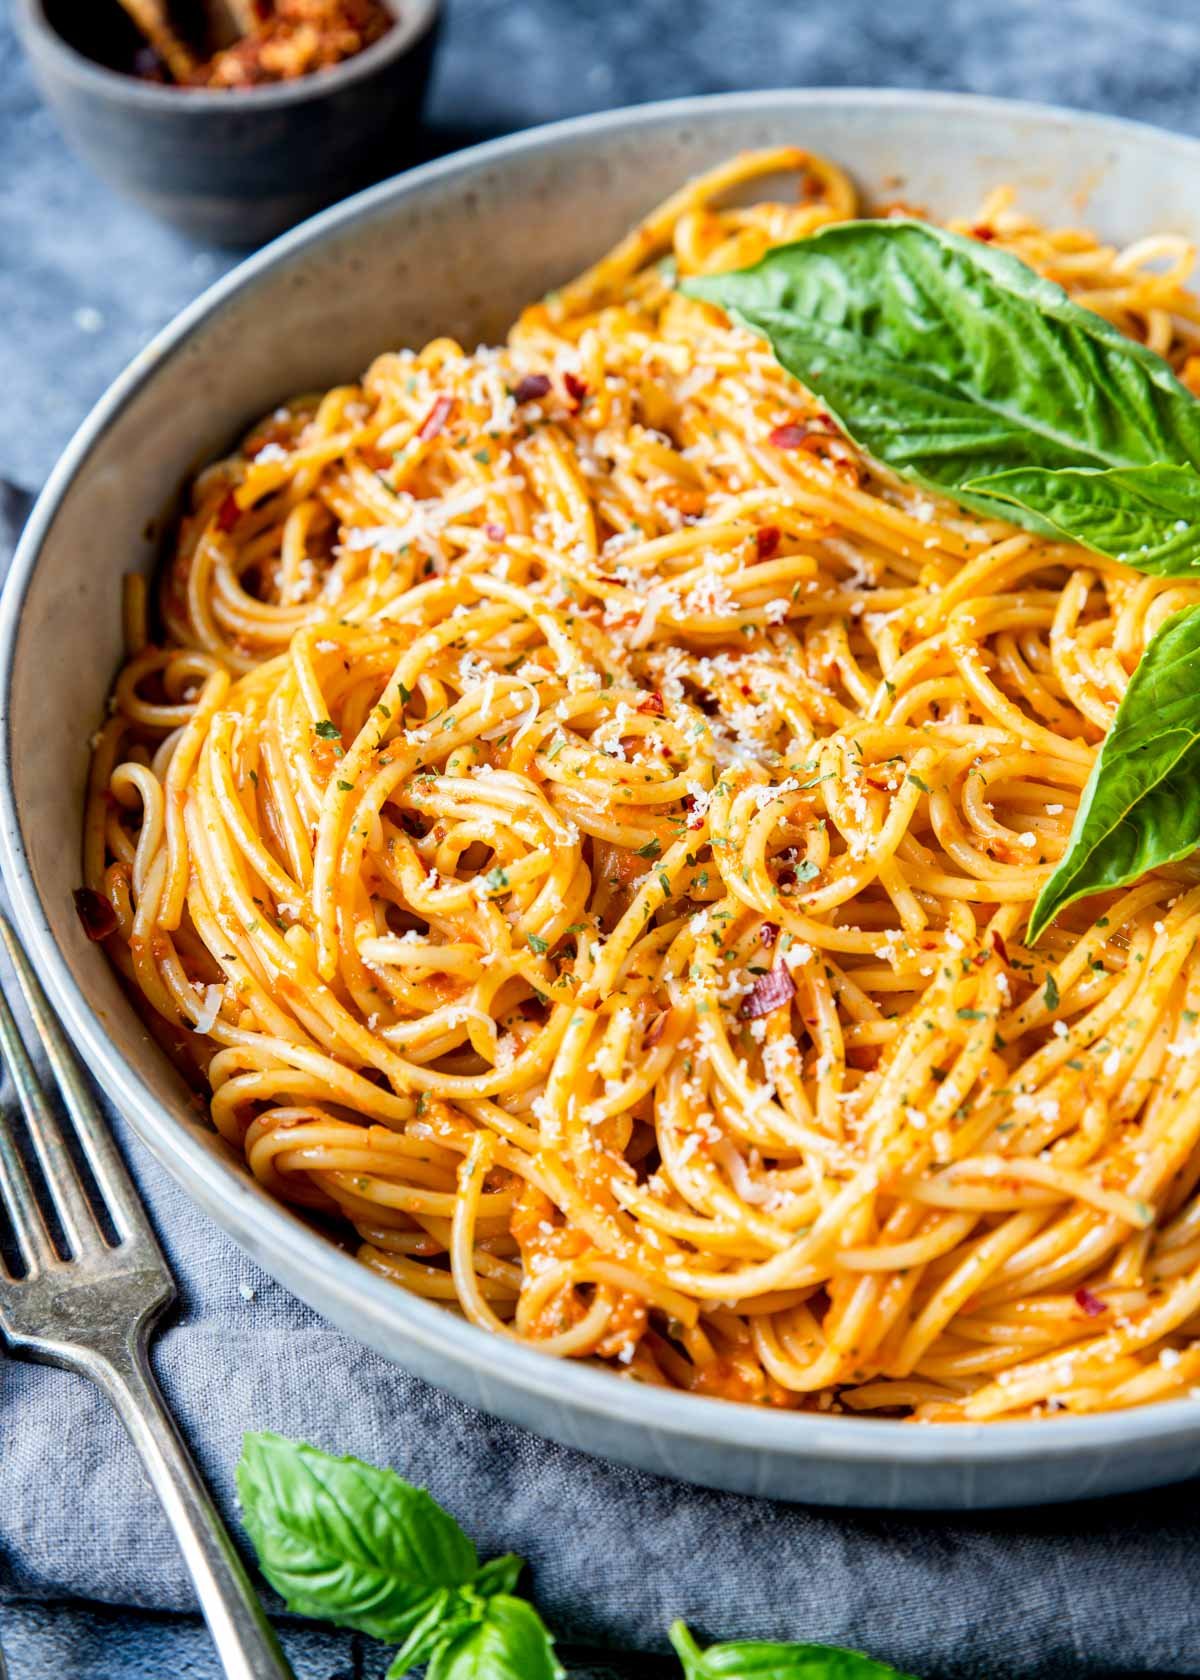 roasted red pepper sauce on pasta